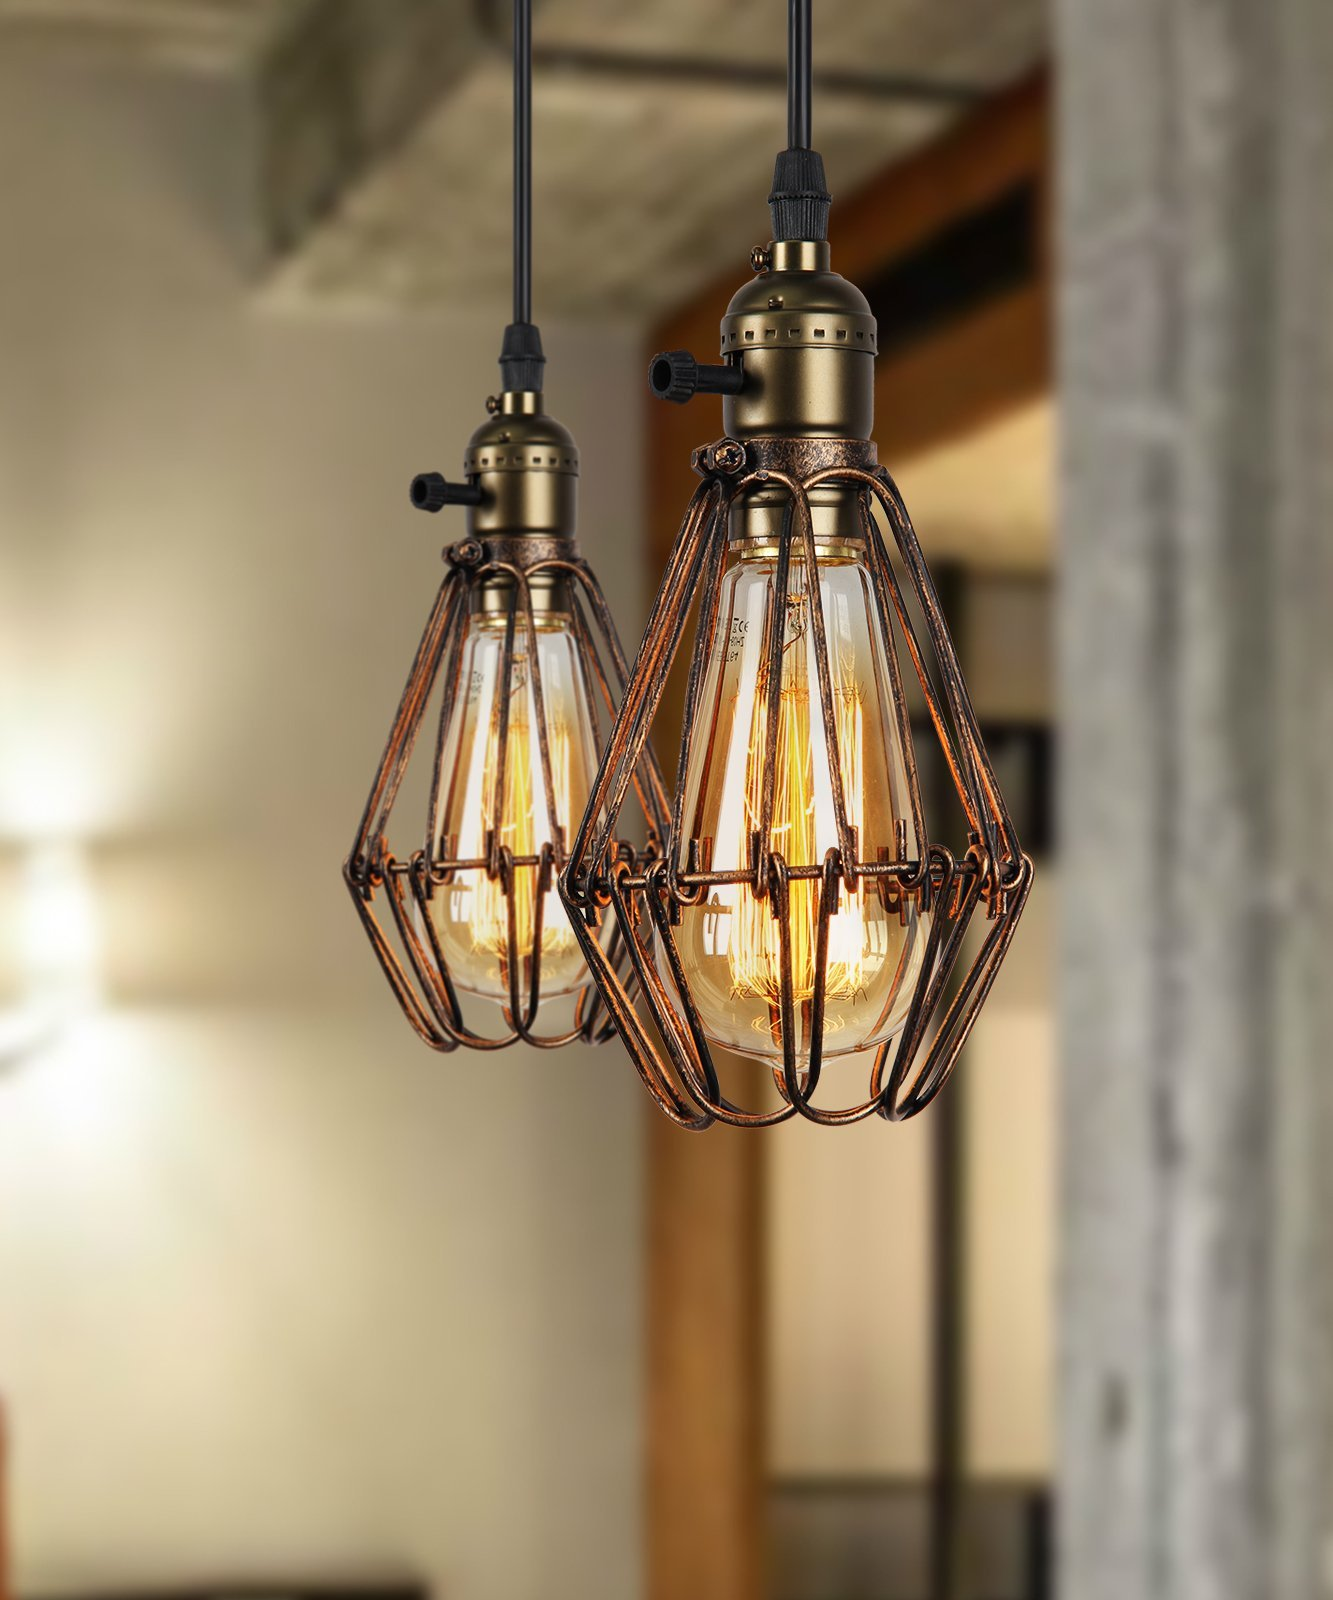 Ee 2 Modern Vintage Industrial Loft Metal Brown Rustic Pendant Light Fittings Bronze